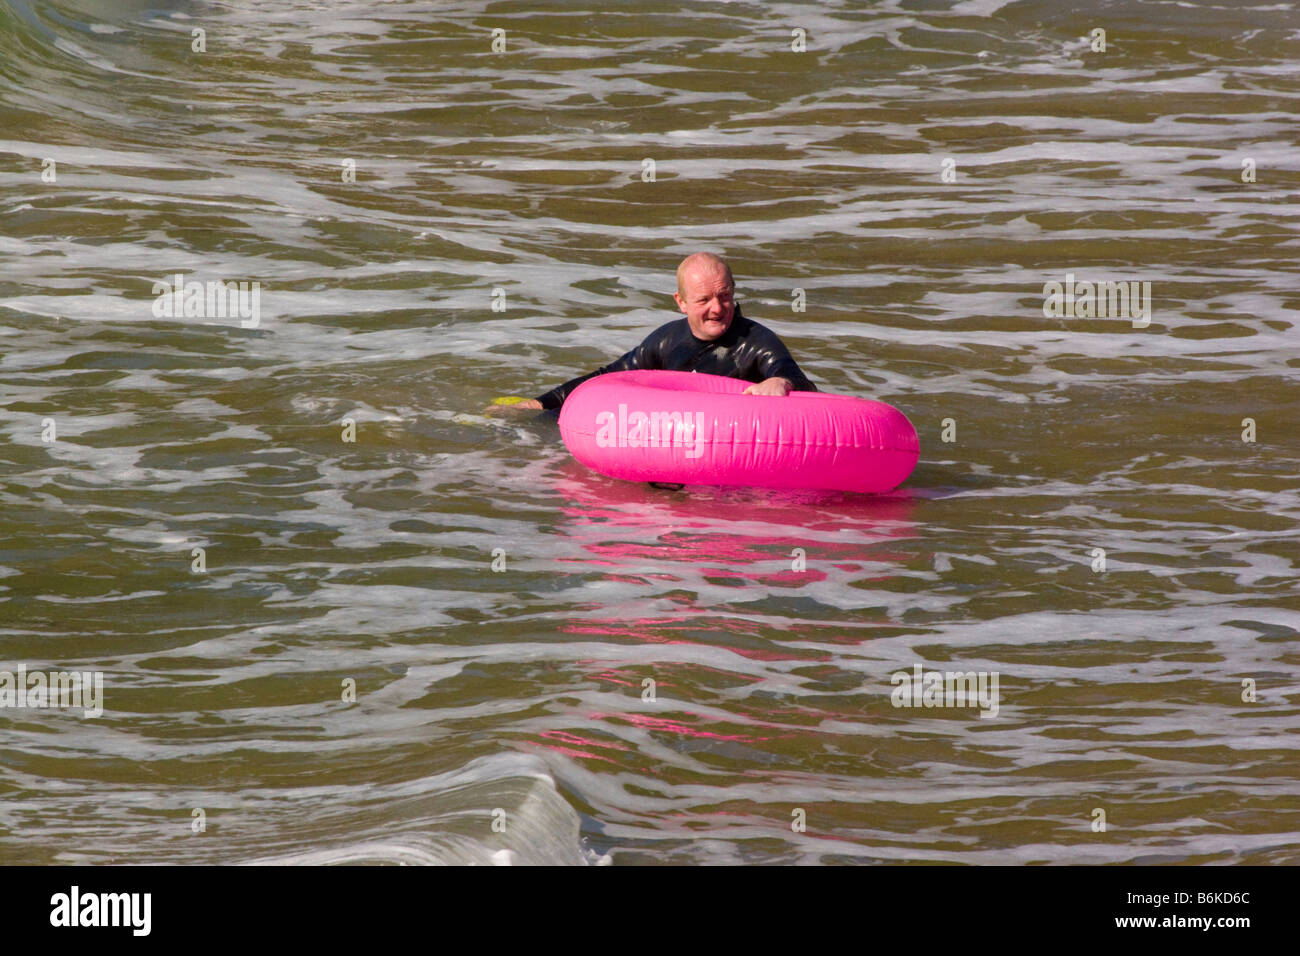 Llangrannog Beach Cardiganshire Cardigan bay Wales UK Man on giant pink rubber ring - Stock Image